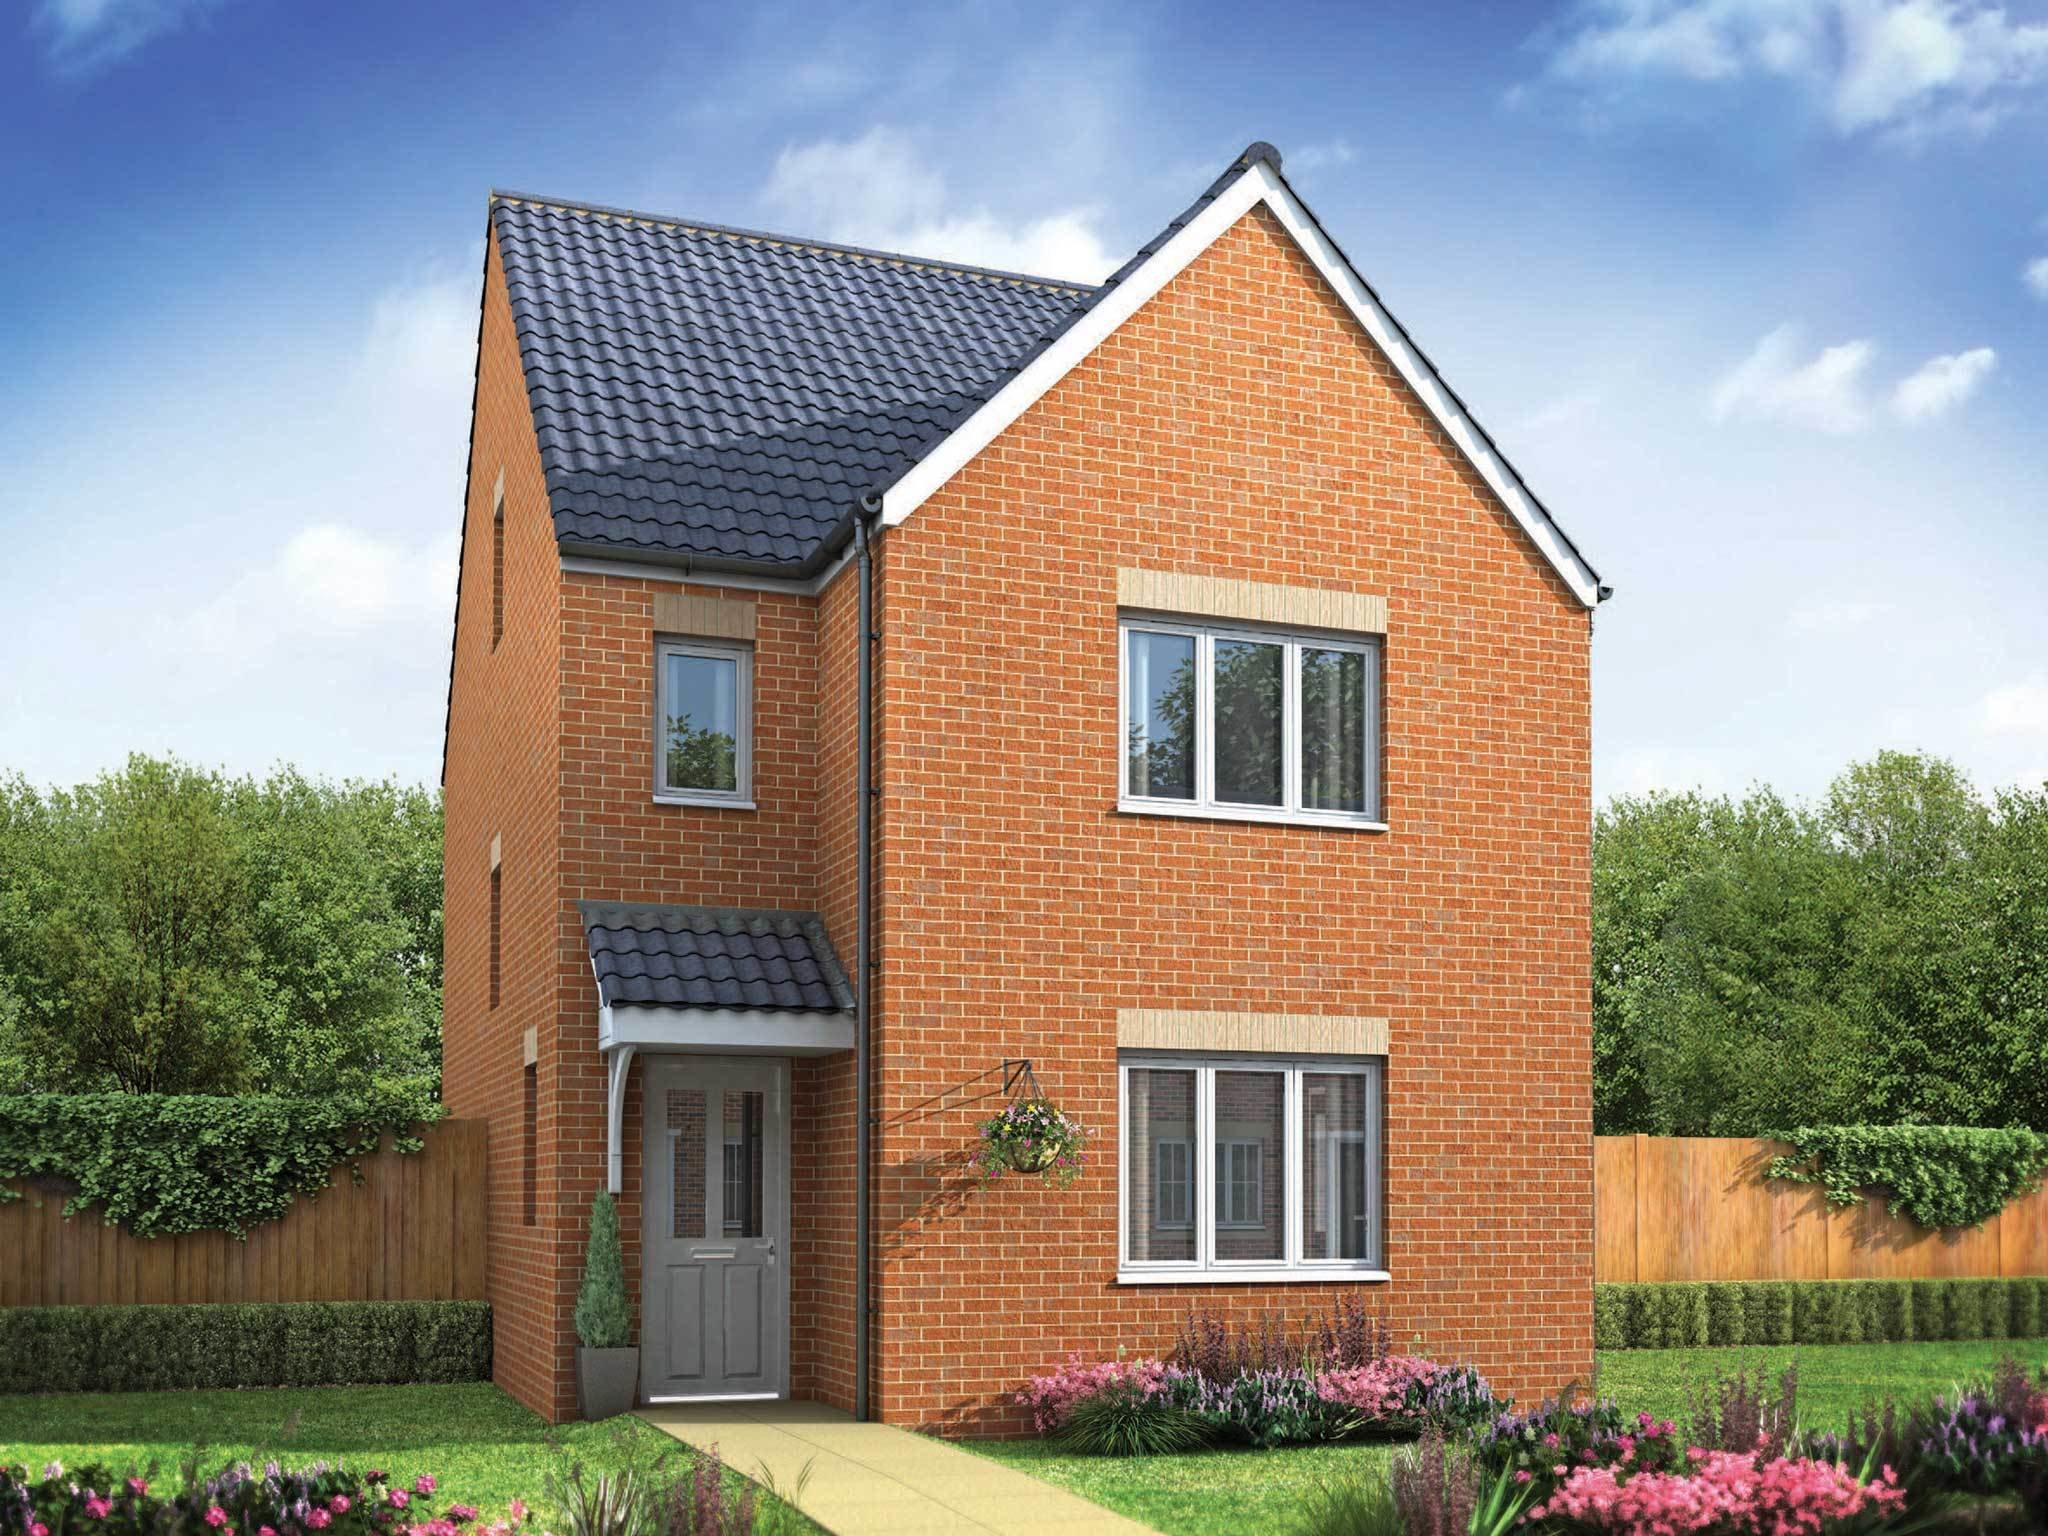 Best Houses For Sale In Birmingham West Midlands B16 0Pu With Pictures